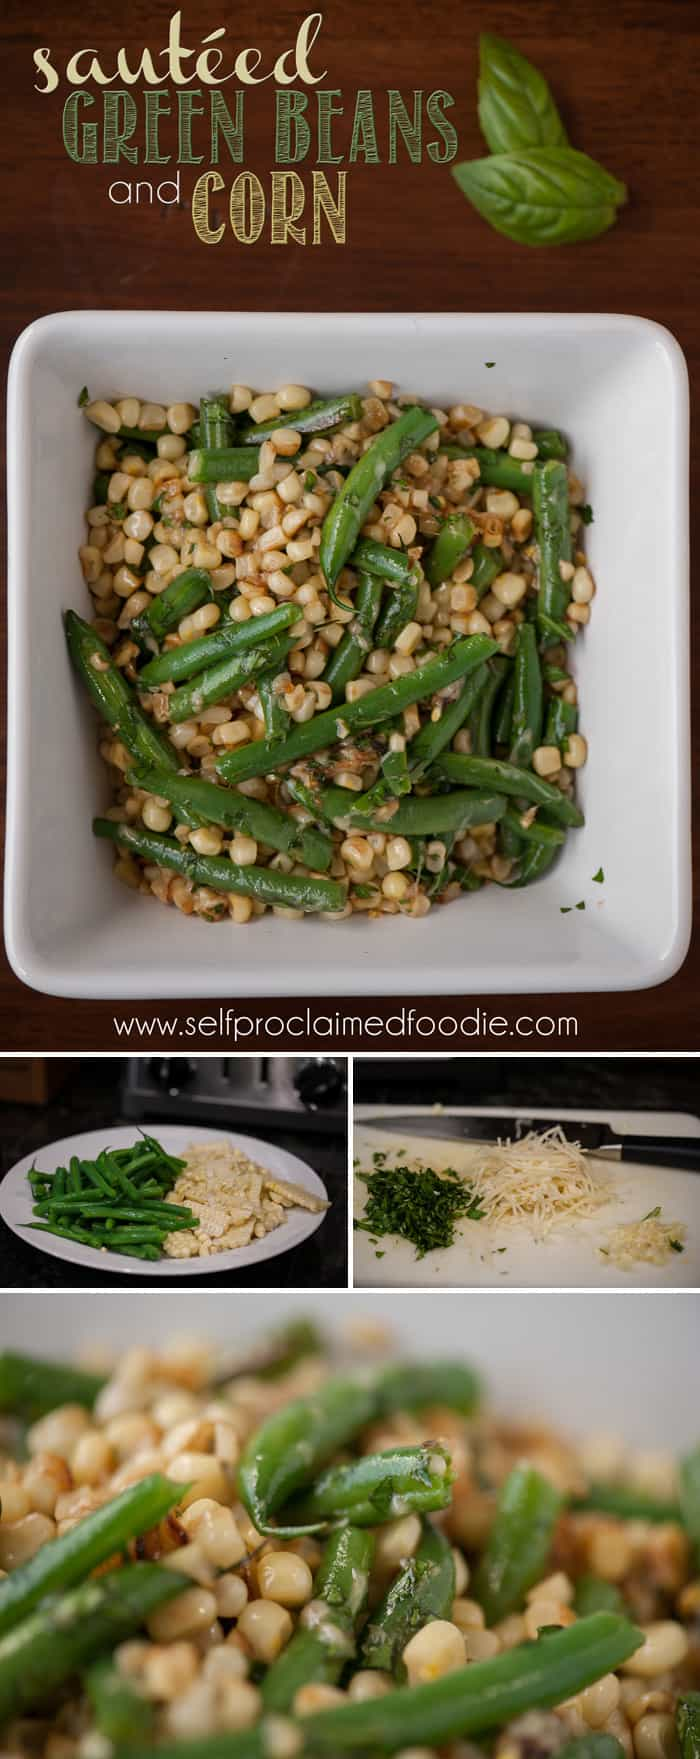 Sauteed Green Beans and Corn make for an easy and delicious vegetable side dish. Blanch the veggies to bring out the vibrant color and amazing fresh taste.